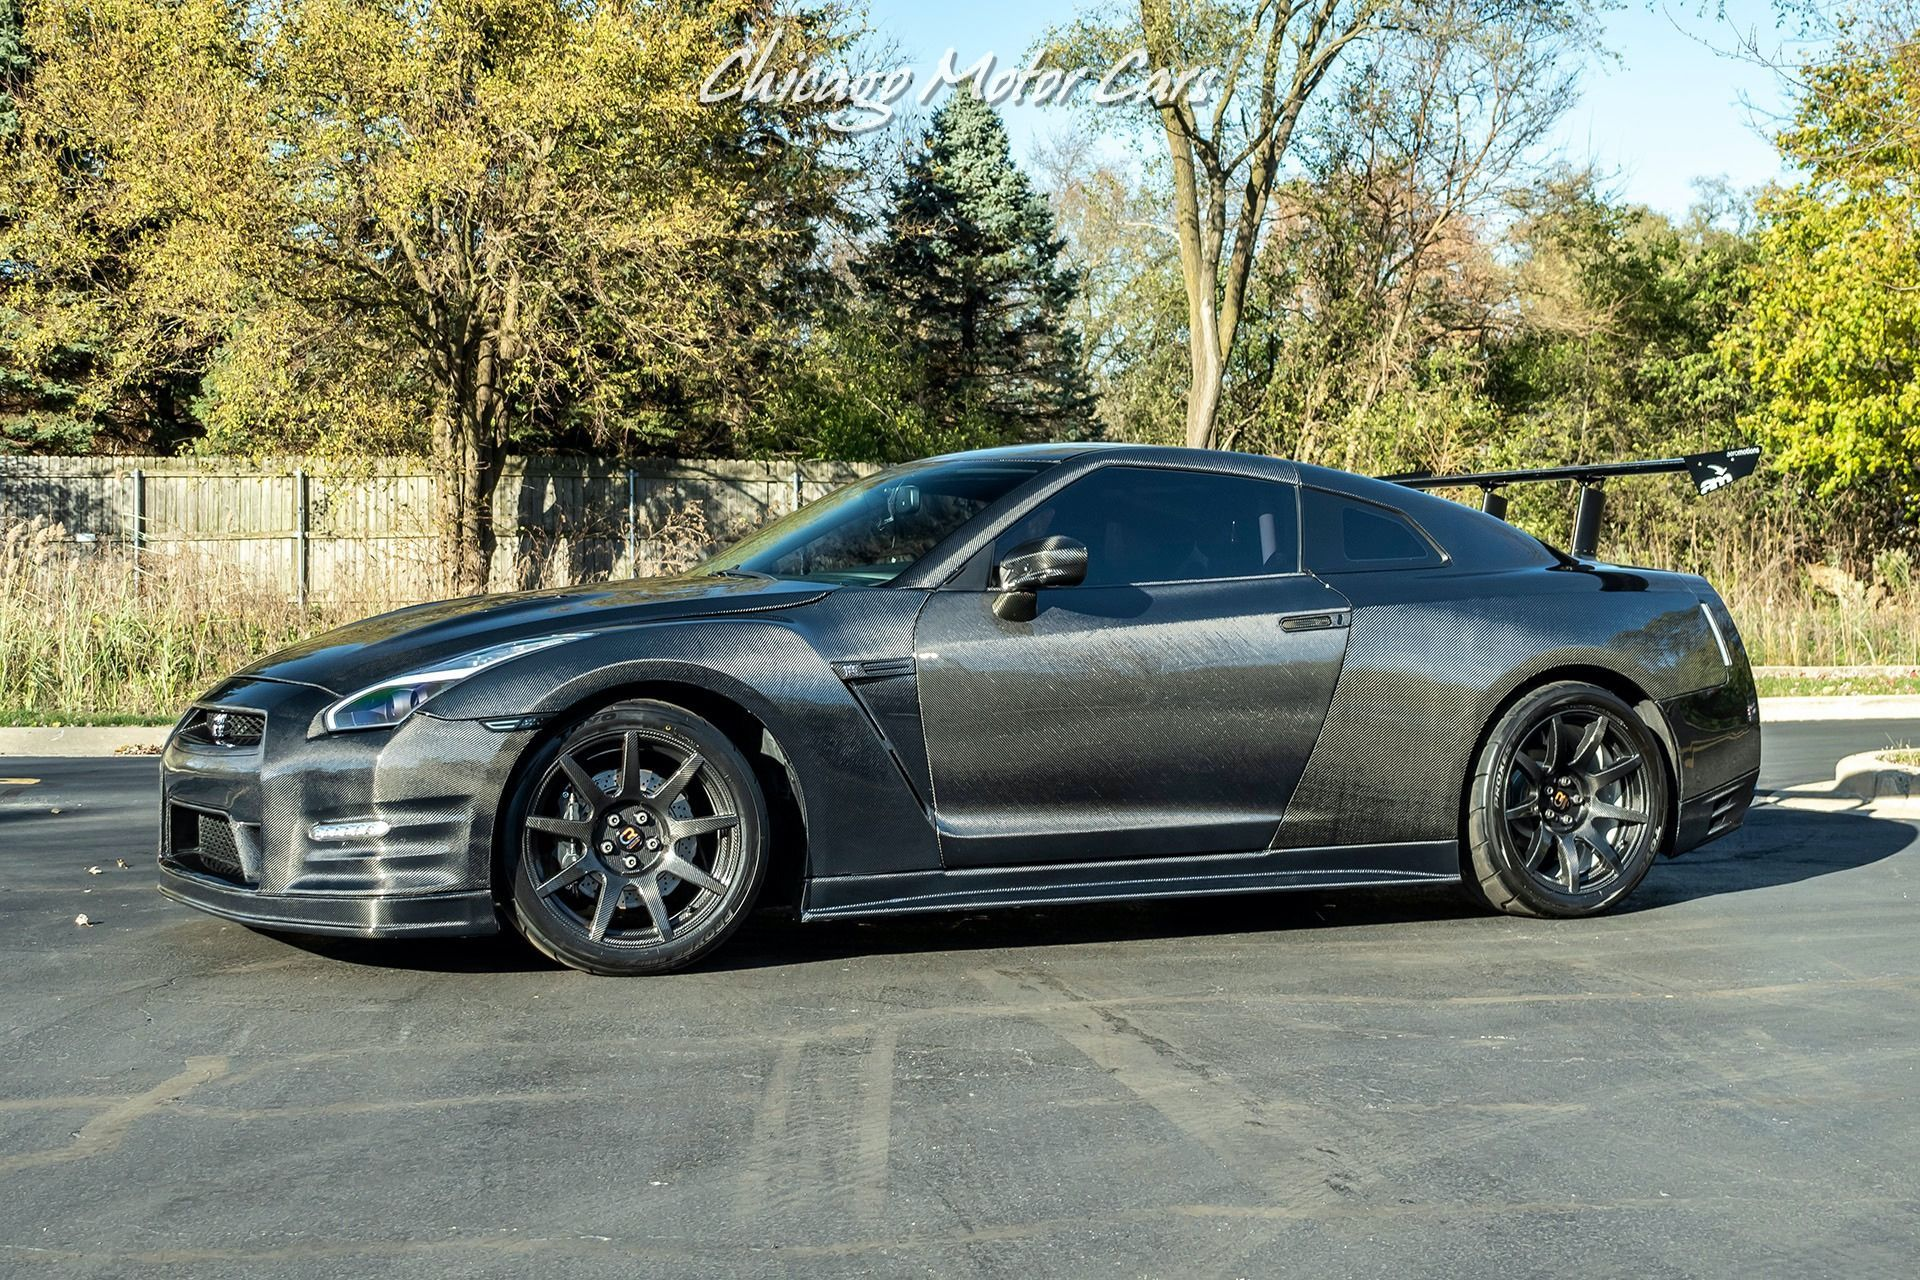 full-carbon_Nissan_GT-R_tuned_0080